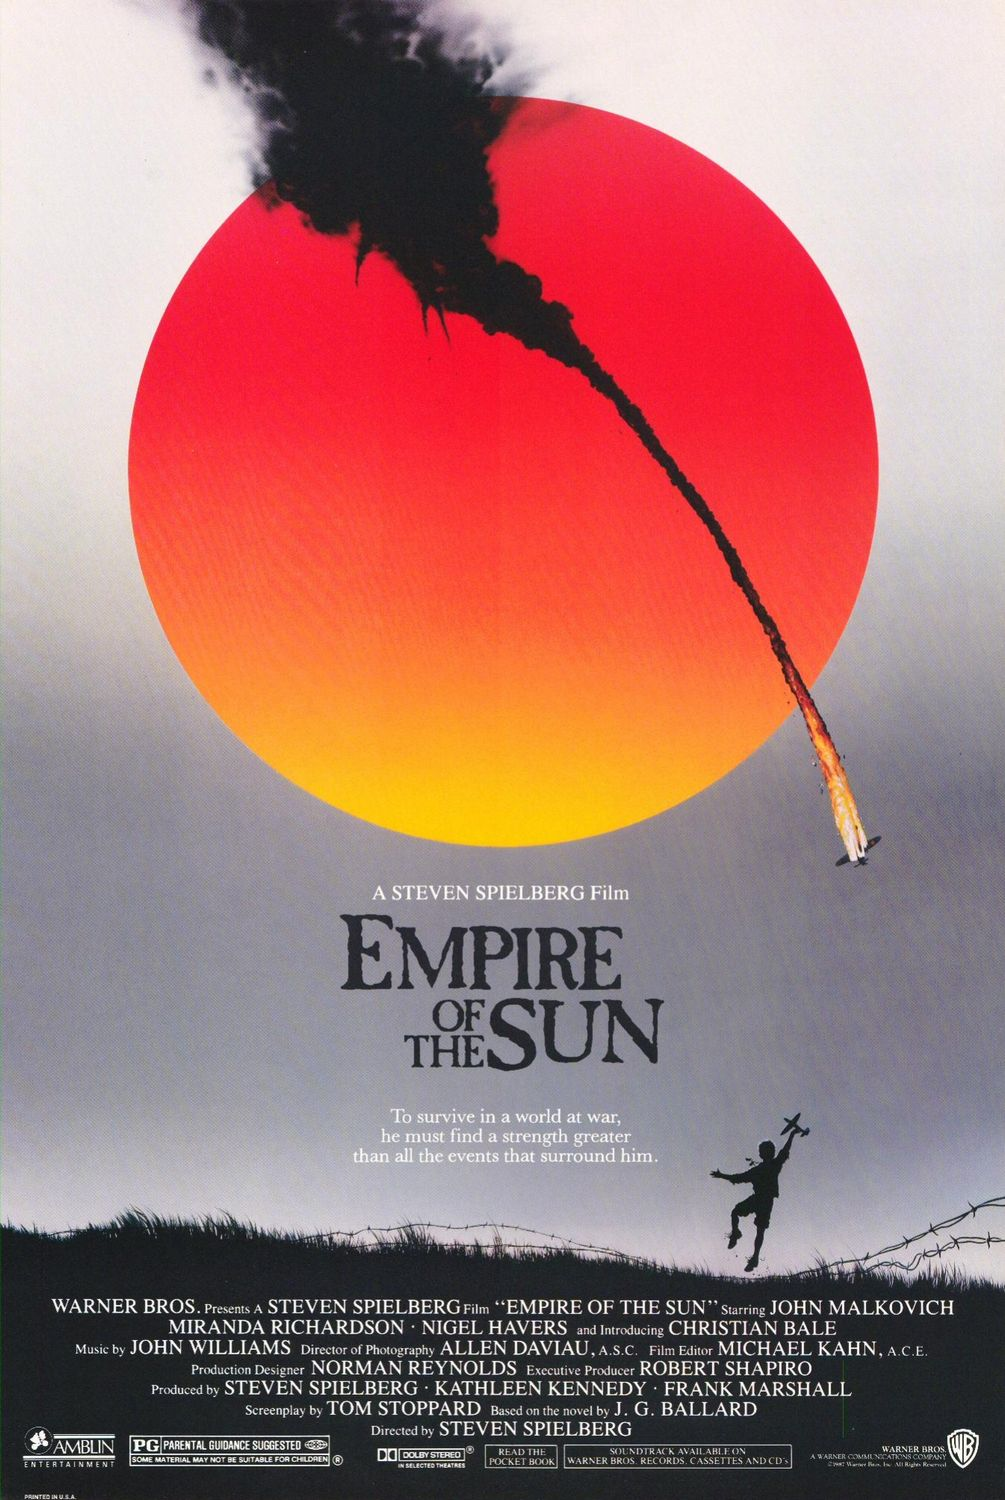 Empire of the Sun (Movie) Review: Underrated Spielberg gem that may be as good as 'Private Ryan'